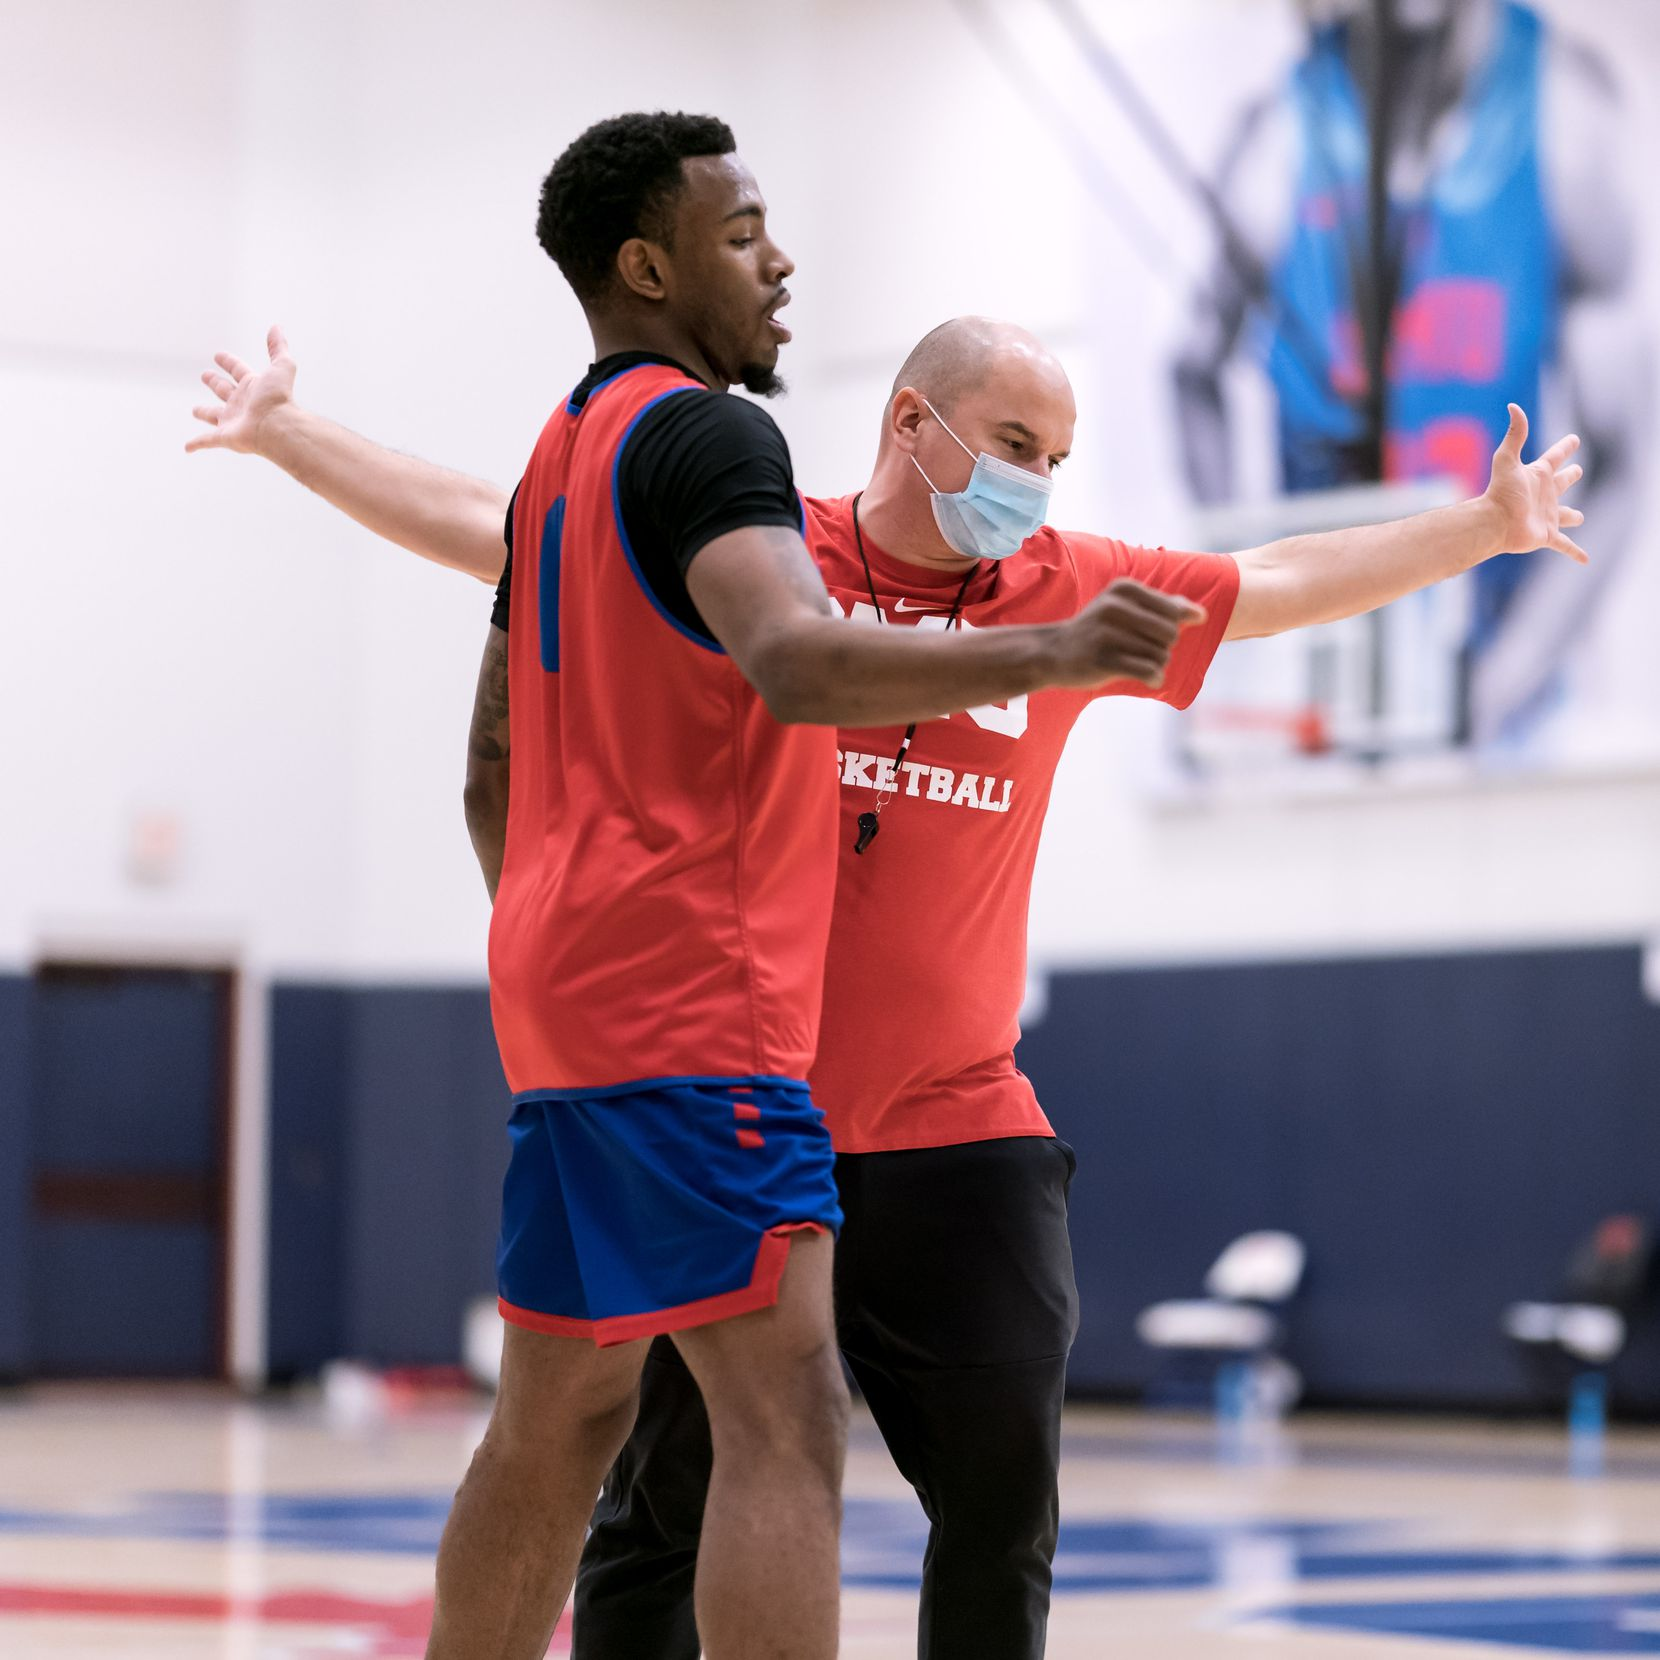 Tyson Jolly works with player development coach Nemanja Jovanovic. Jolly returned to the court for his first game on Saturday.